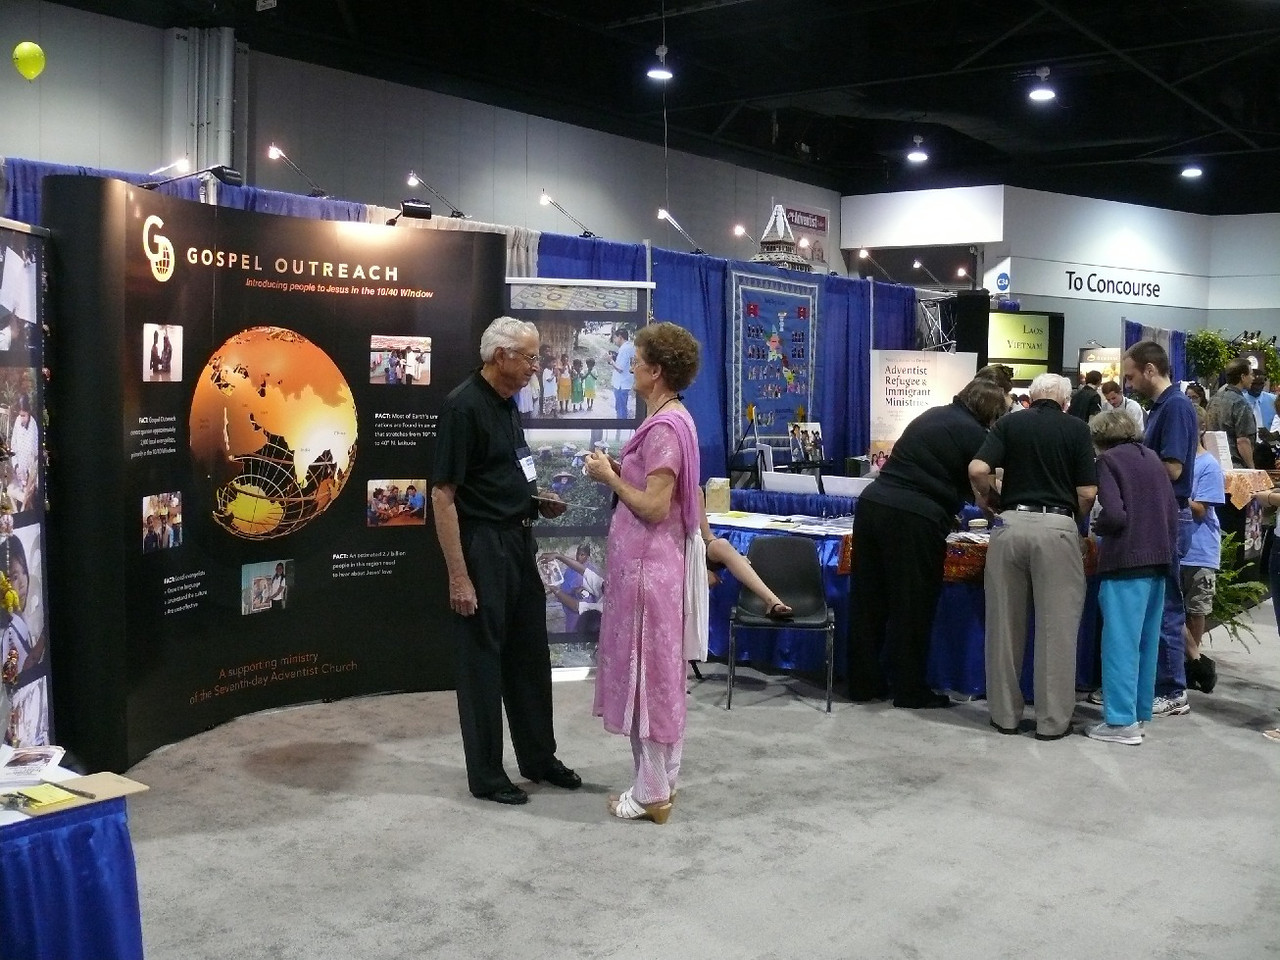 The Gospel Outreach booth where Pastor John Blake, Deaf Ministry Director, spent many hours.  Gospel Outreach has around 40 workers for the Deaf in 7 countries and about 1,800 hearing workers in over 30 countries.  Most are employees of the local Conference/Mission but sponsored by Gospel Outreach.